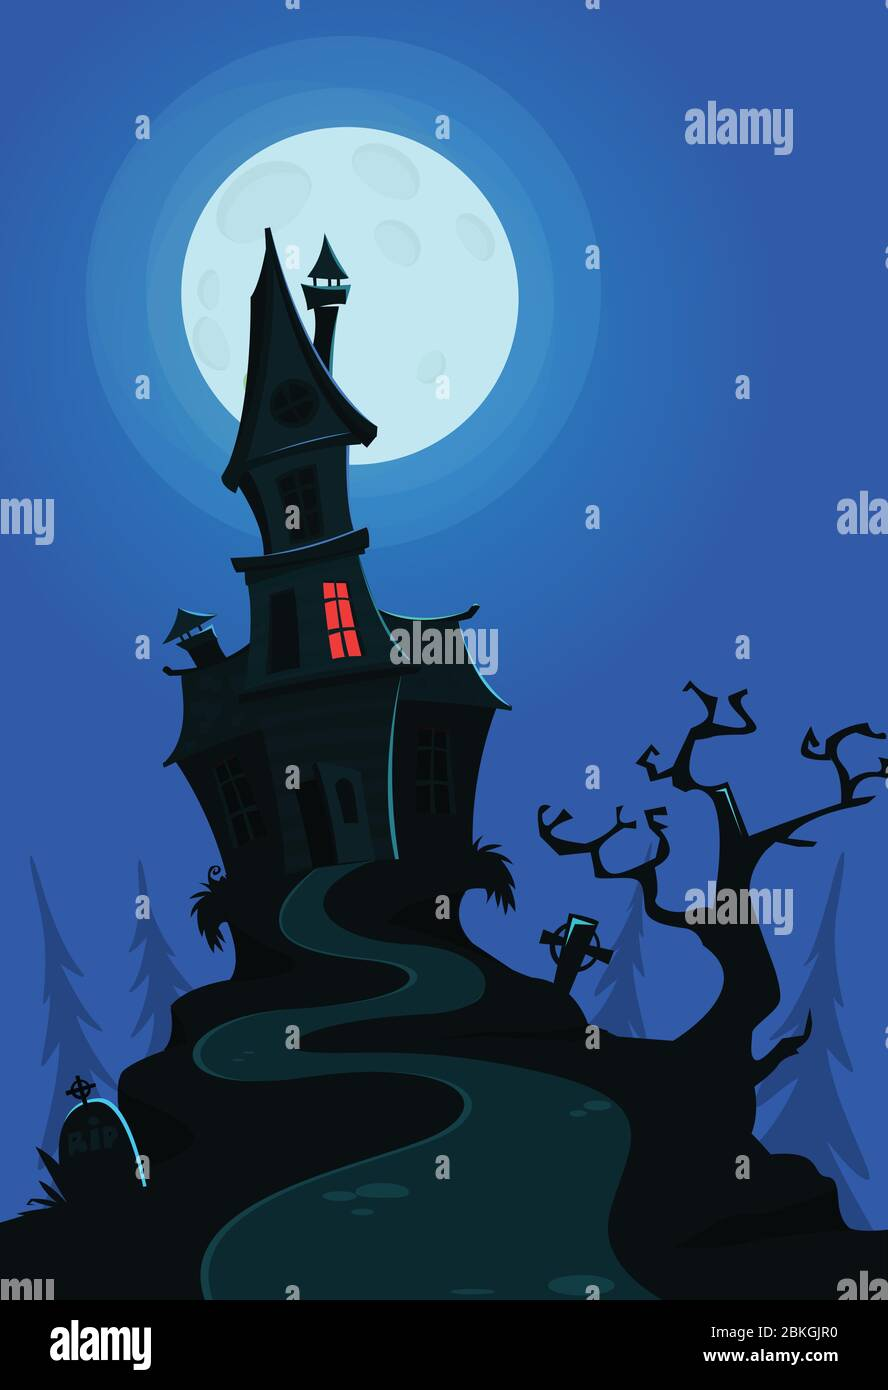 Vector Illustration Of A Cartoon Creepy Haunted House On Halloween Night Stock Vector Image Art Alamy Cartoon christmas snow woman holding a broom #1347356. https www alamy com vector illustration of a cartoon creepy haunted house on halloween night image356251812 html